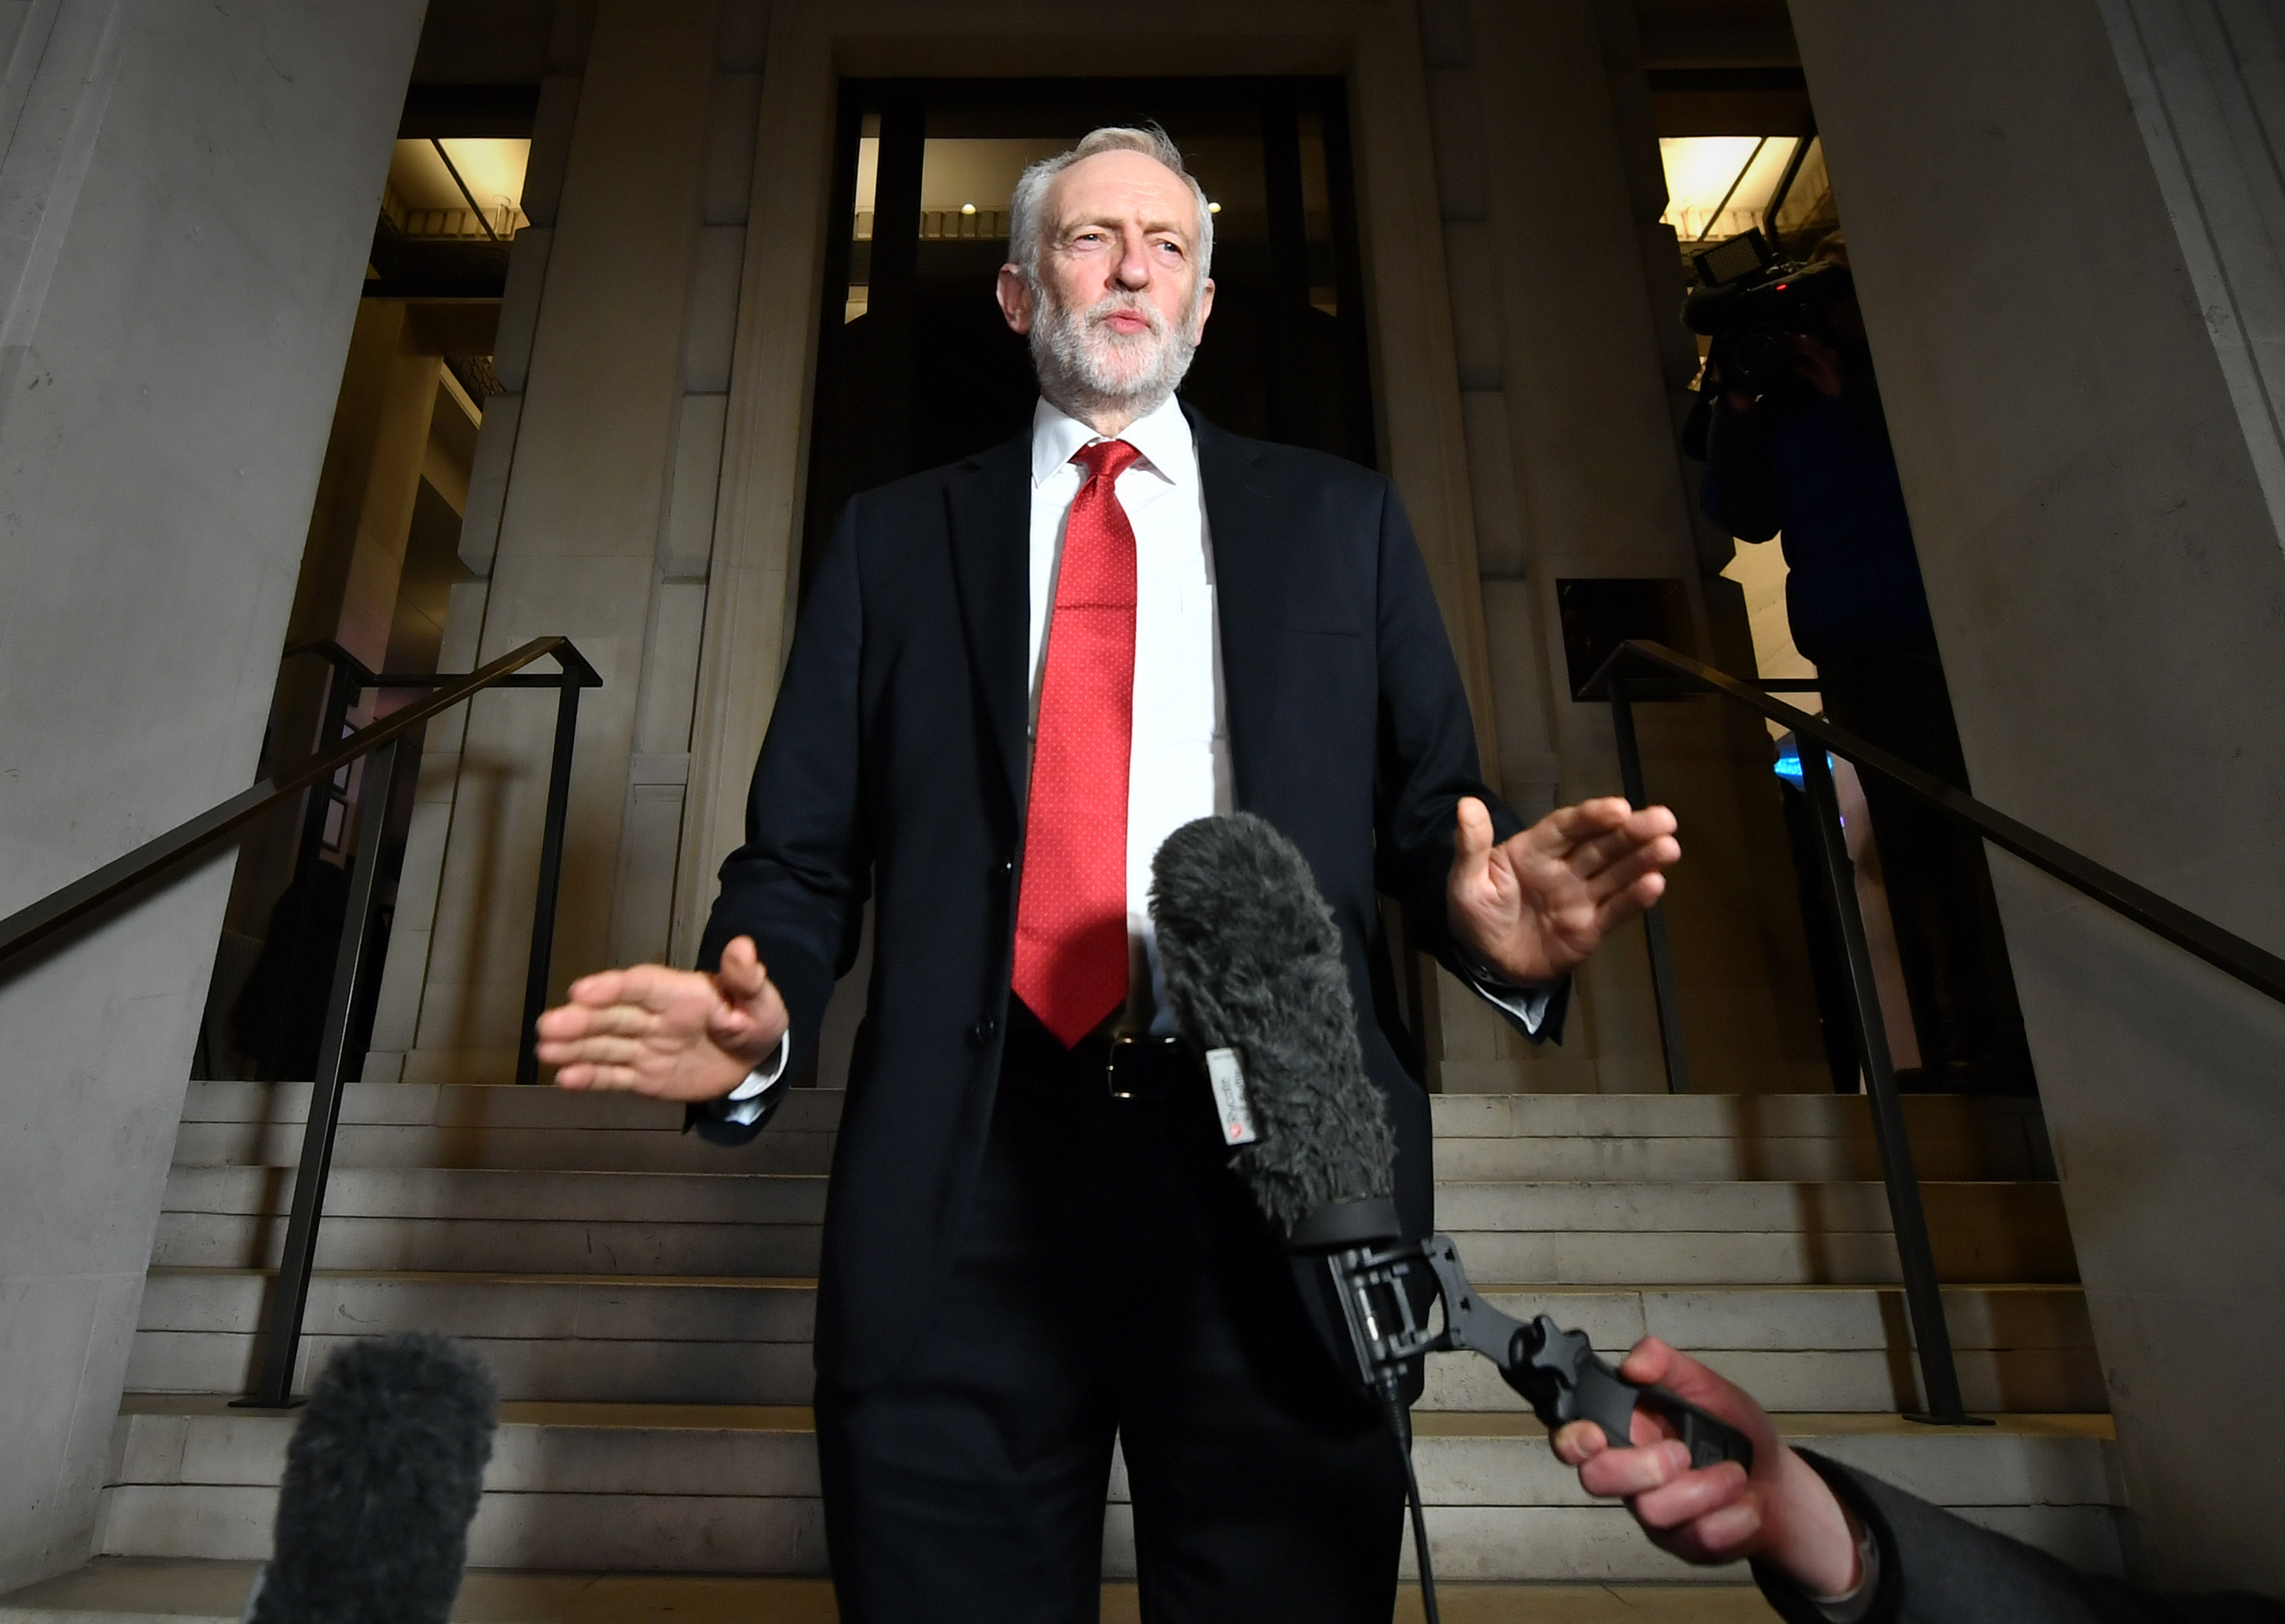 Labour Party leader Jeremy Corbyn speaking after a Labour clause V meeting on the manifesto at Savoy Place in London.